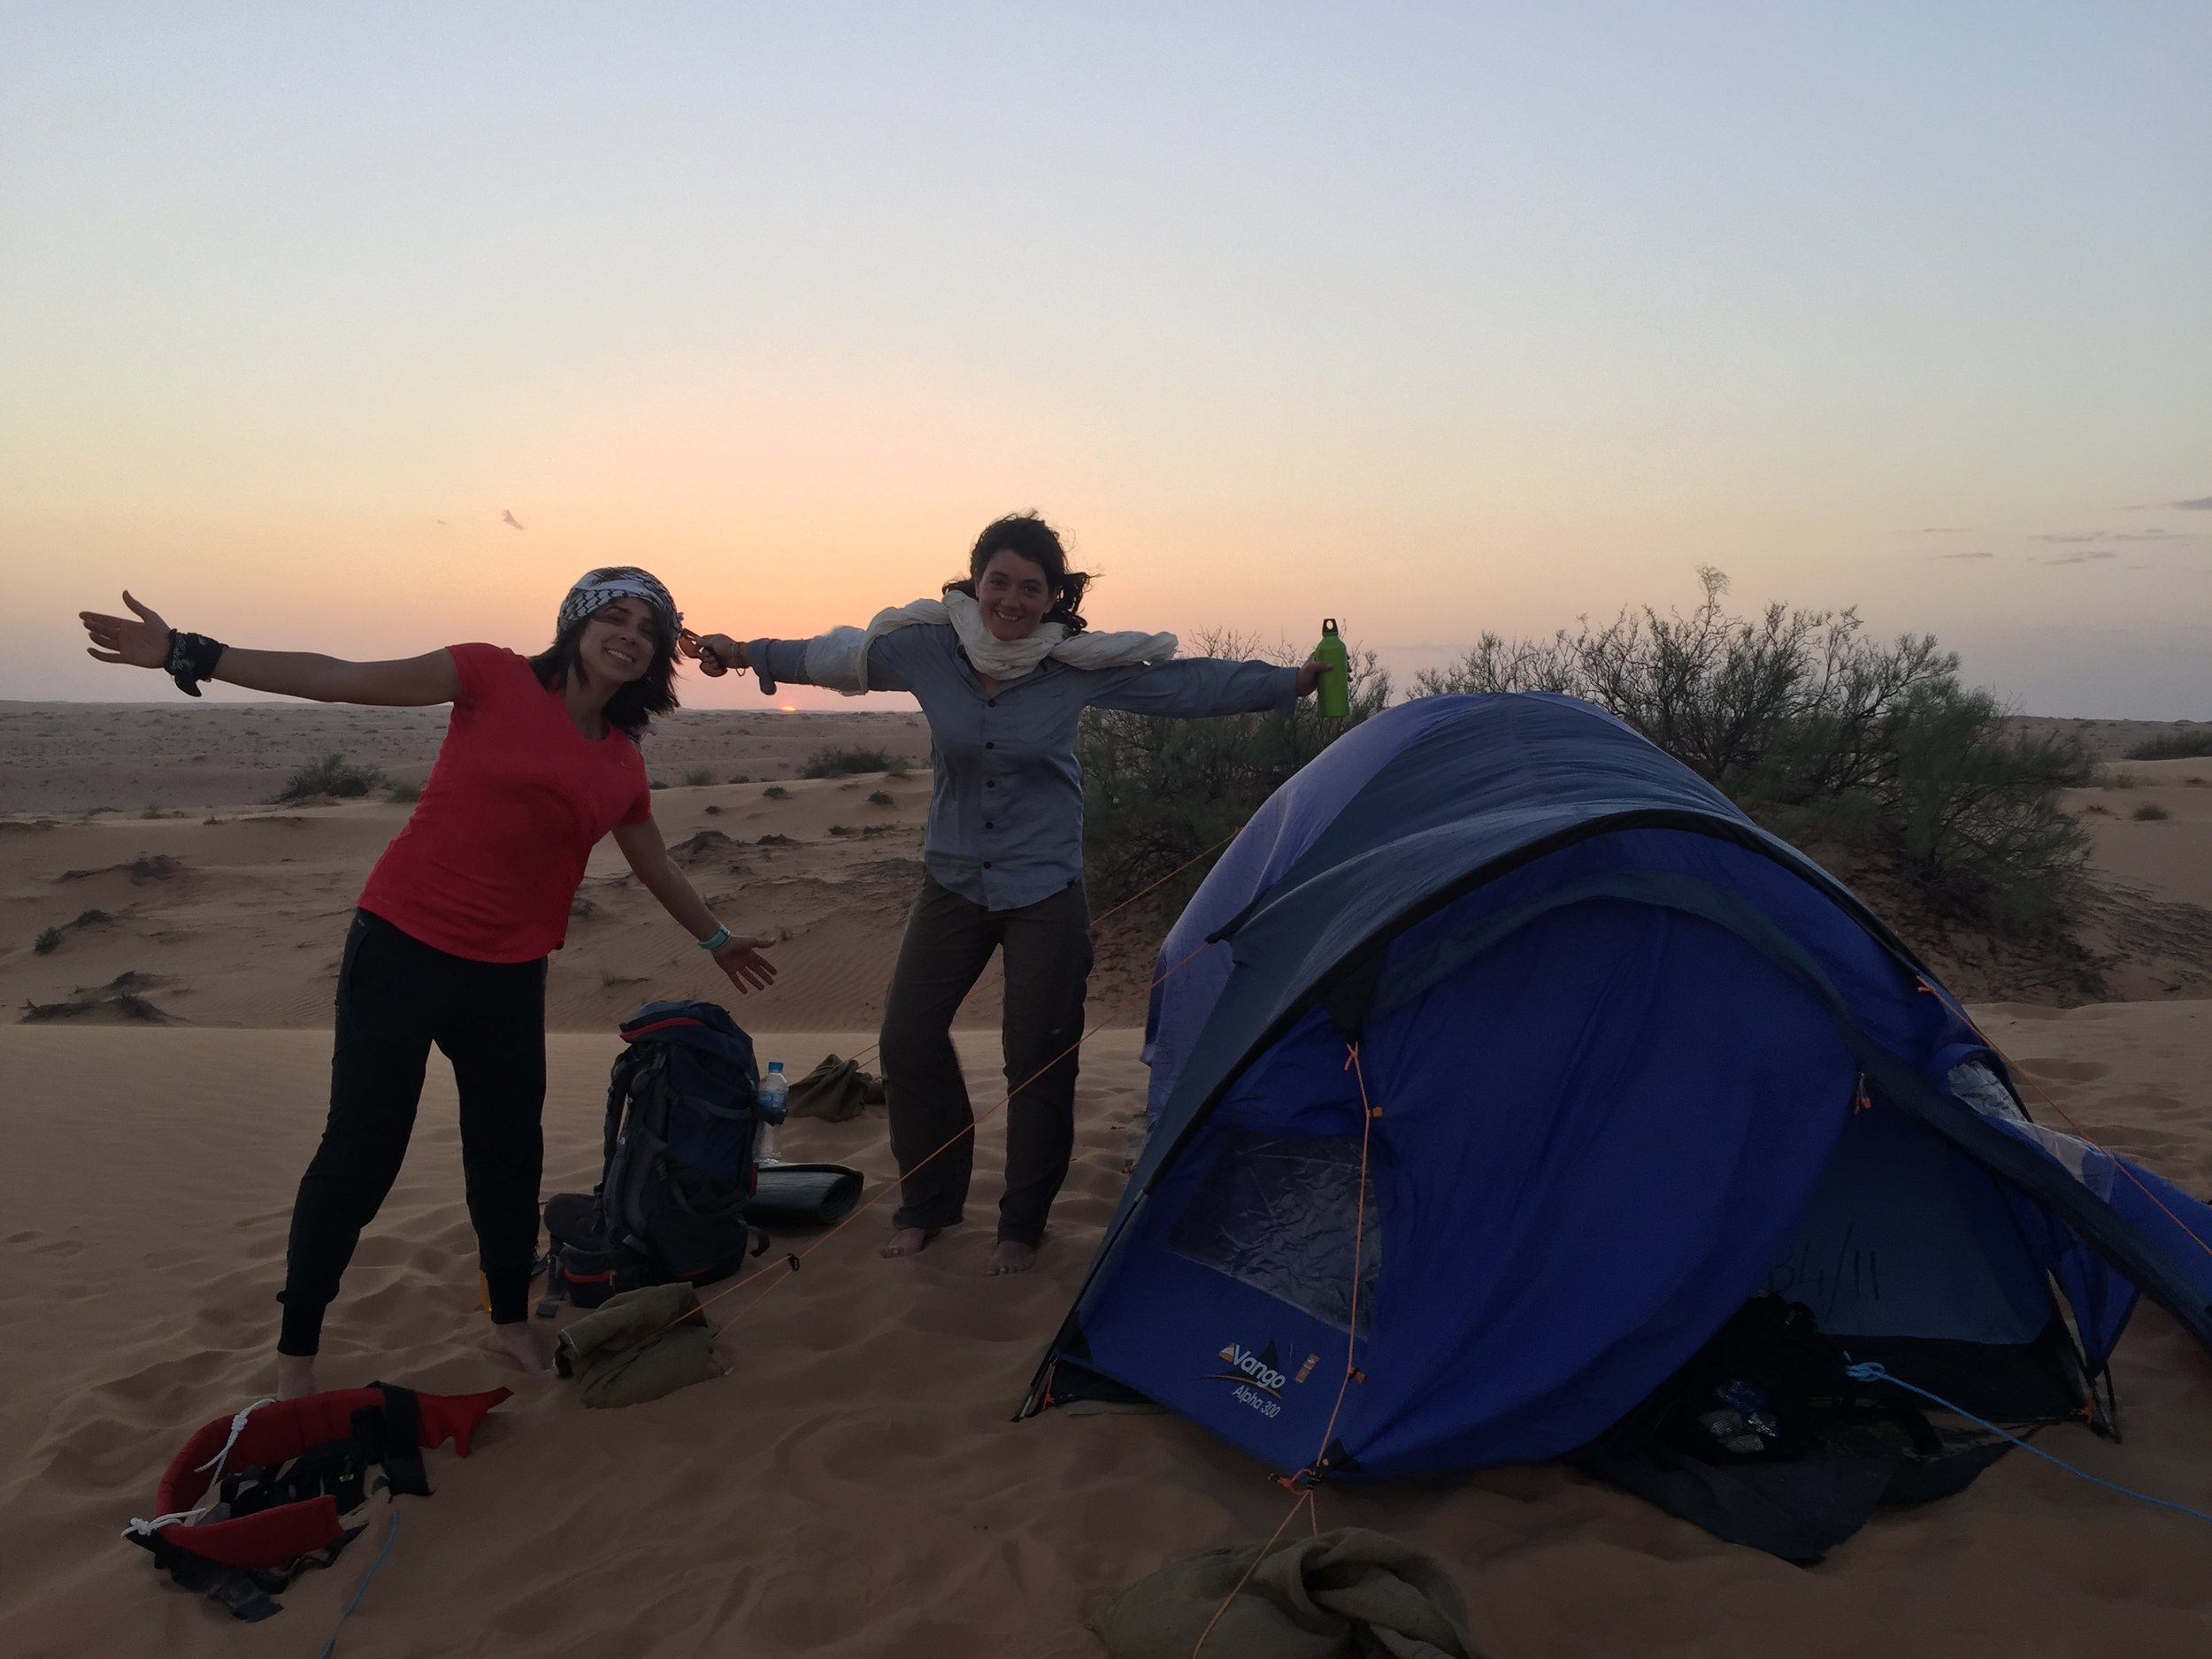 Lamees (Kuwait) and Susan (France) celebrating a glorious end to a tough first day.